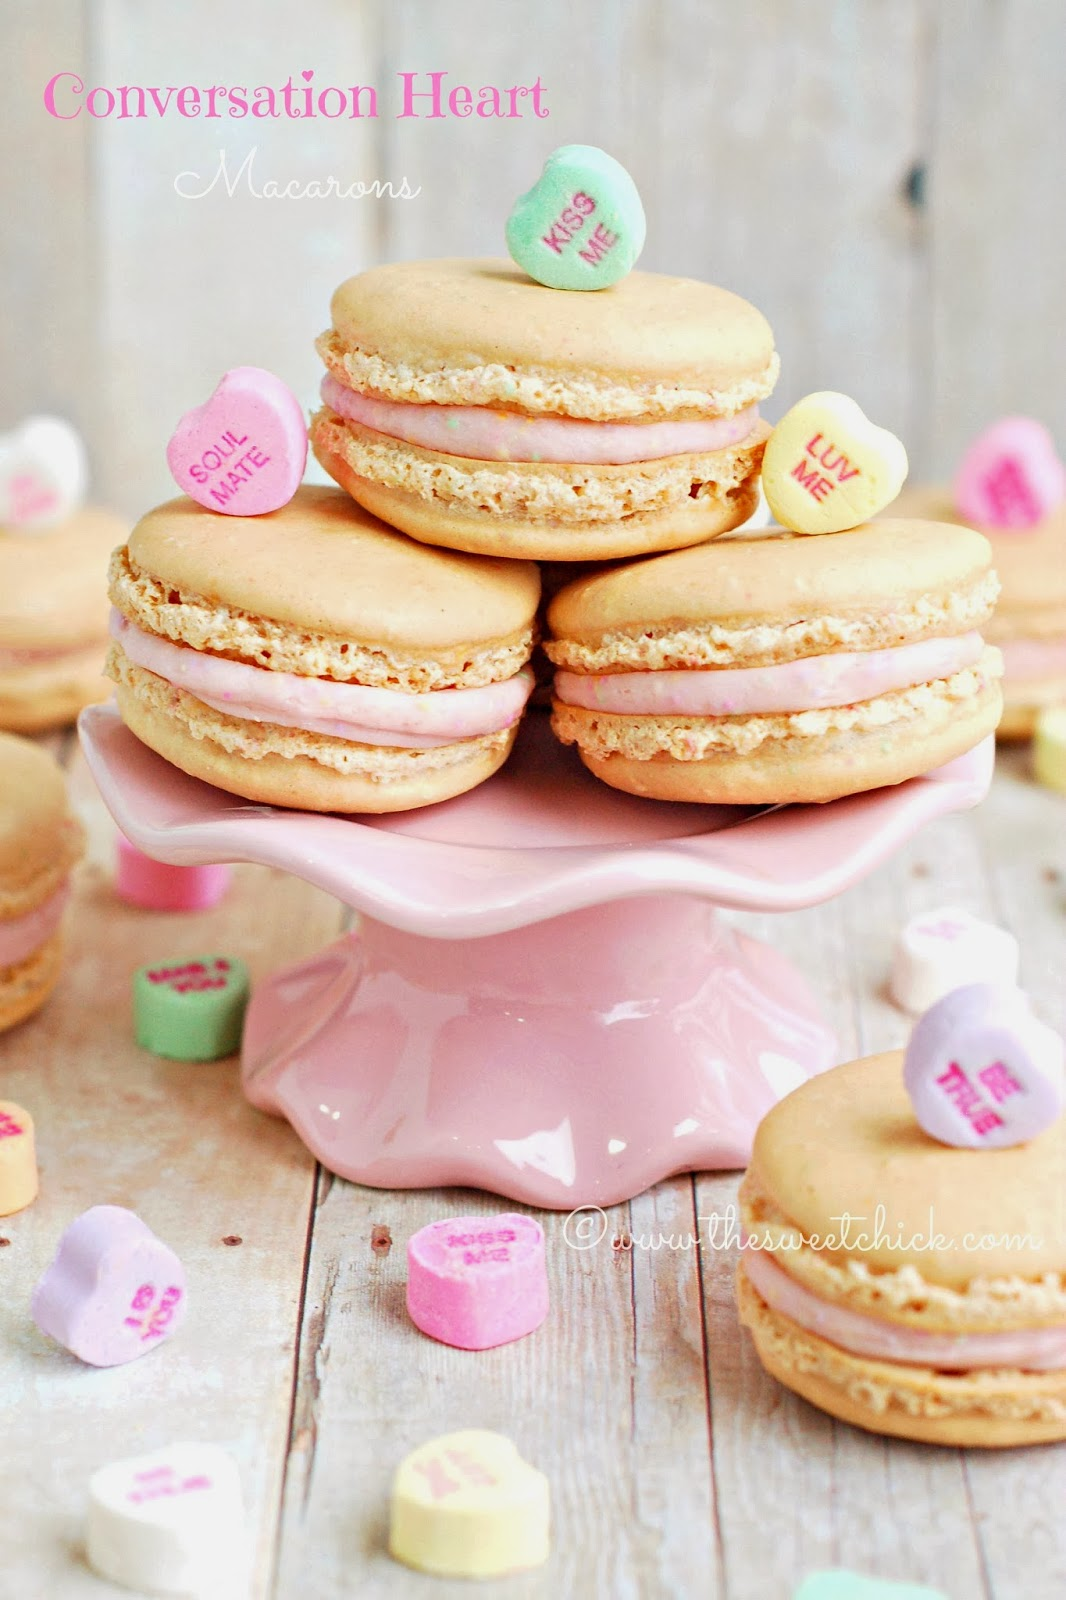 Conversation Heart Macarons by The Sweet Chick